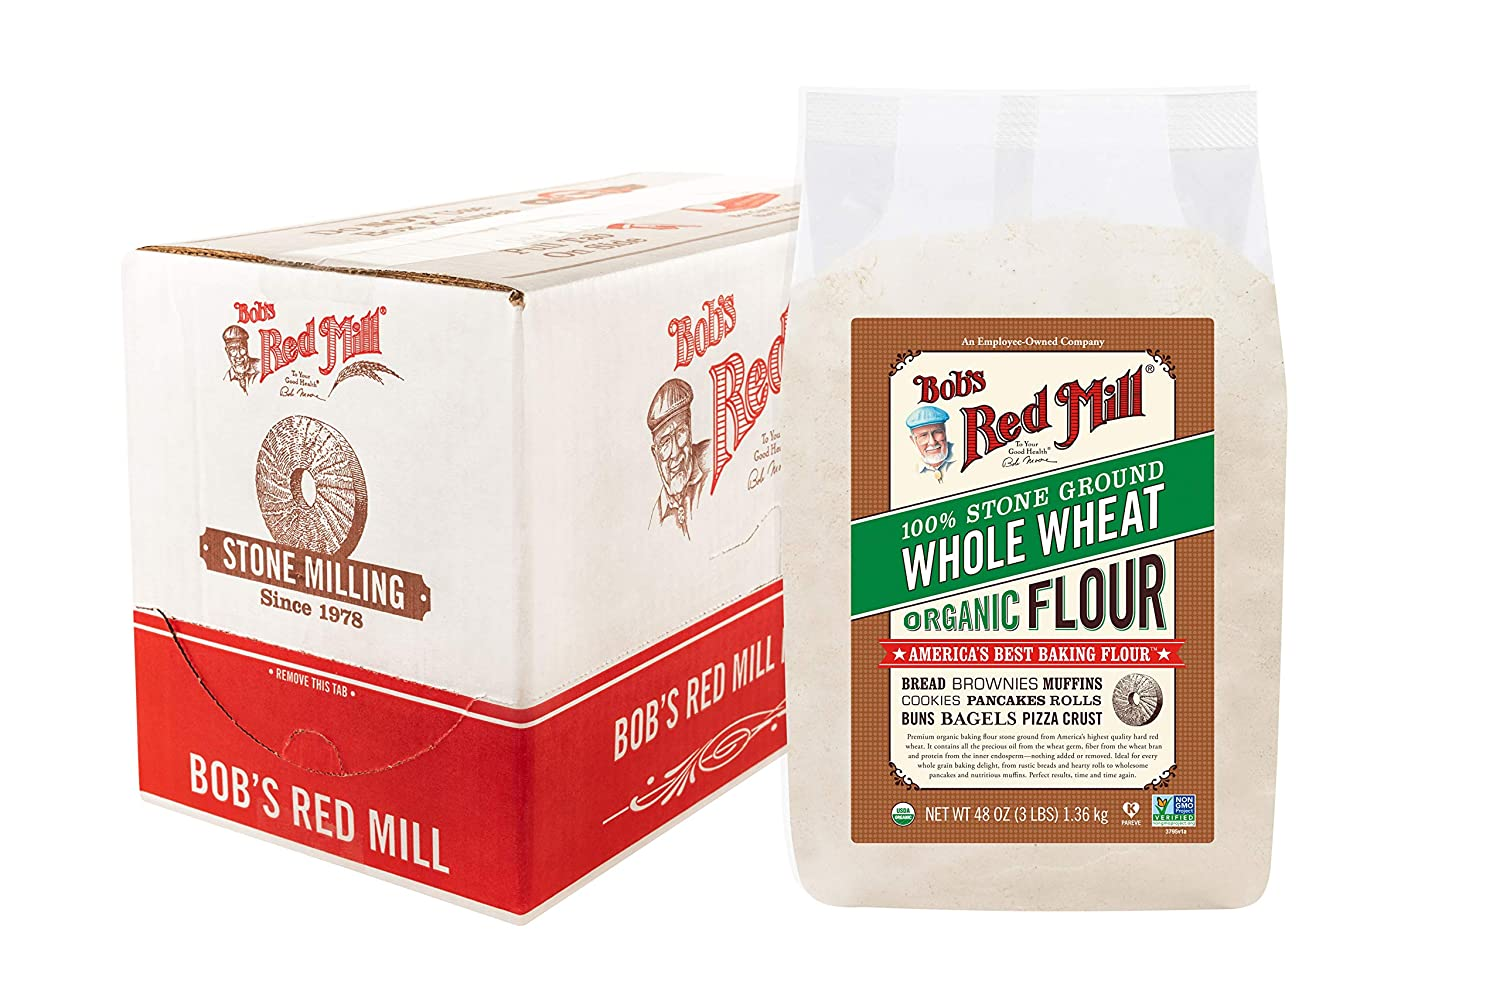 Bob's Red Mill Organic Whole Wheat Flour, 3 Pound (Pack of 4), 192 Ounce